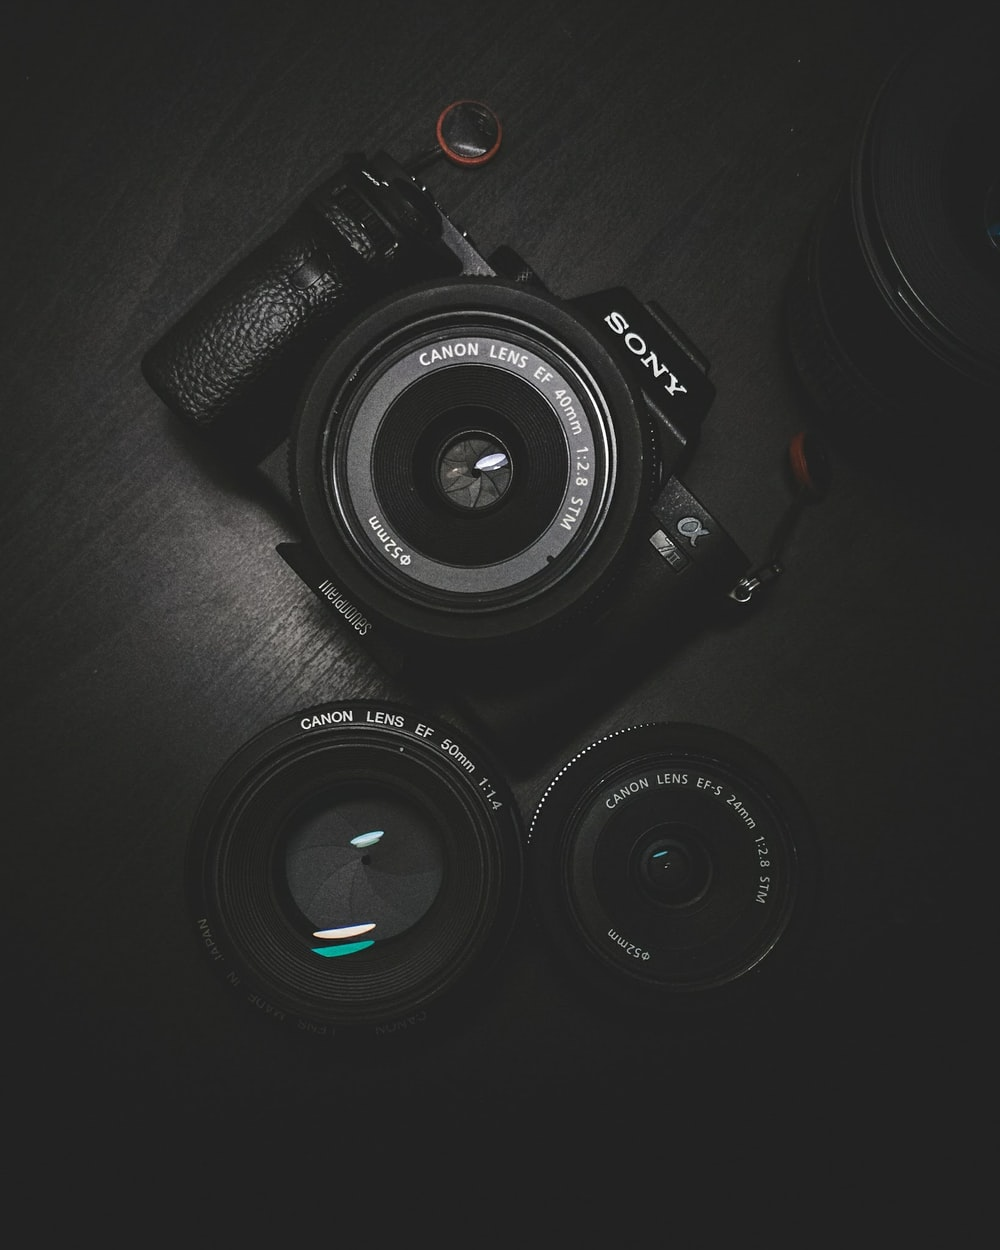 flat lay photography of black Sony DSLR camera on black surface